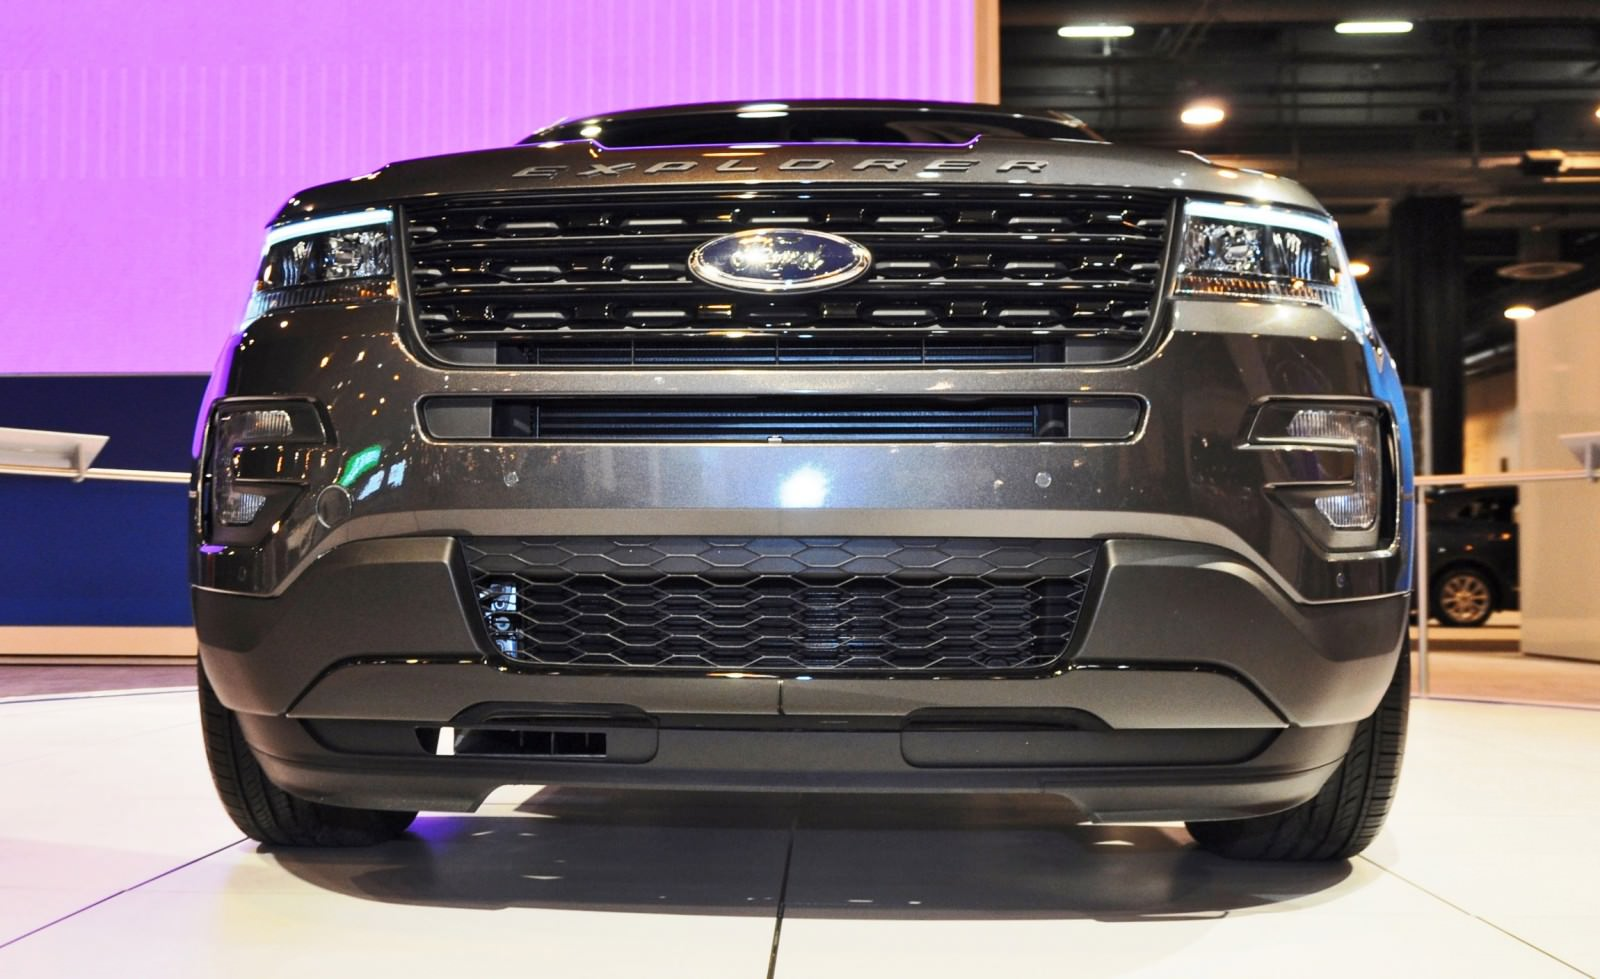 Paging dr gerry mcgovern there is a ford explorer sport here to see you gerry mcgovern ford explorer sport and ford explorer